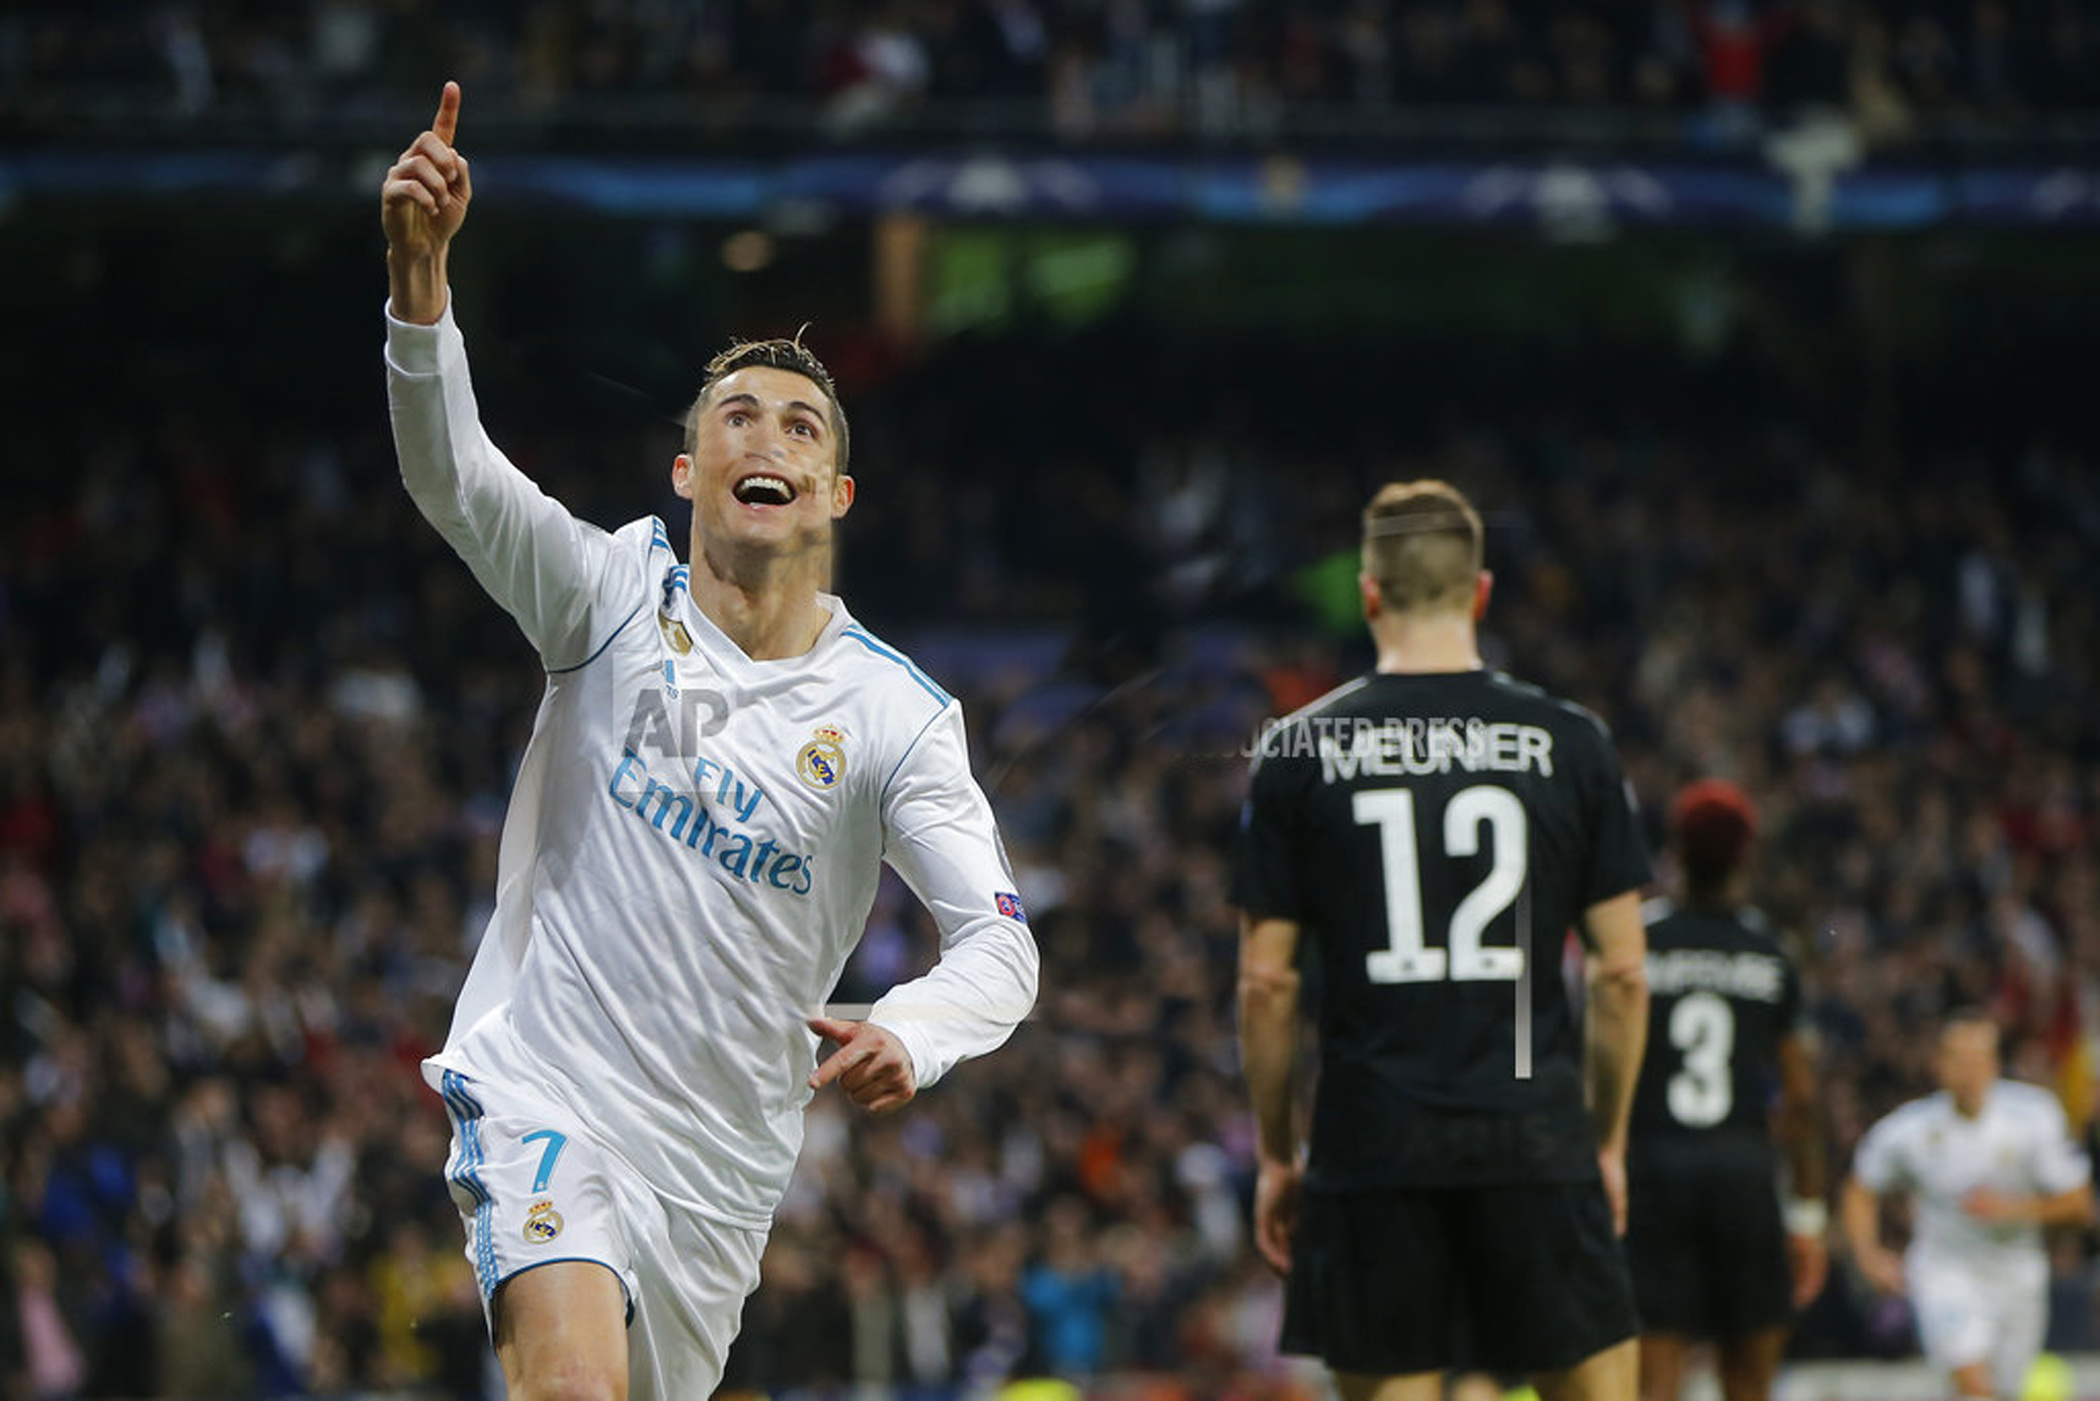 Delight for Ronaldo after match-winning display against PSG